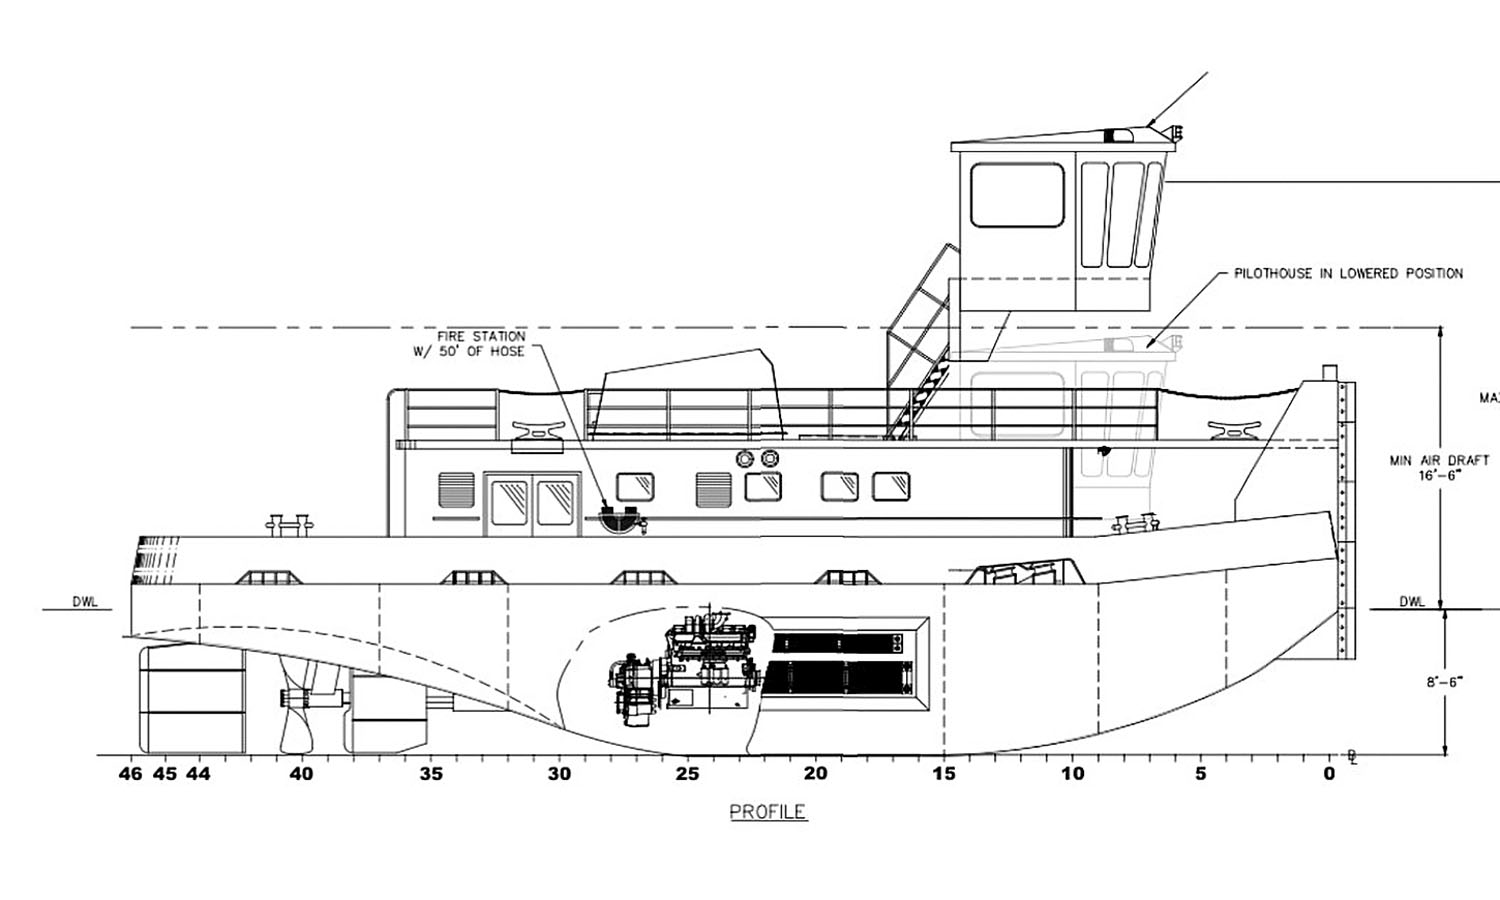 New 1,600 hp. retractable-pilothouse towboat under construction at McGinnis Inc.'s Sheridan Shipyard.